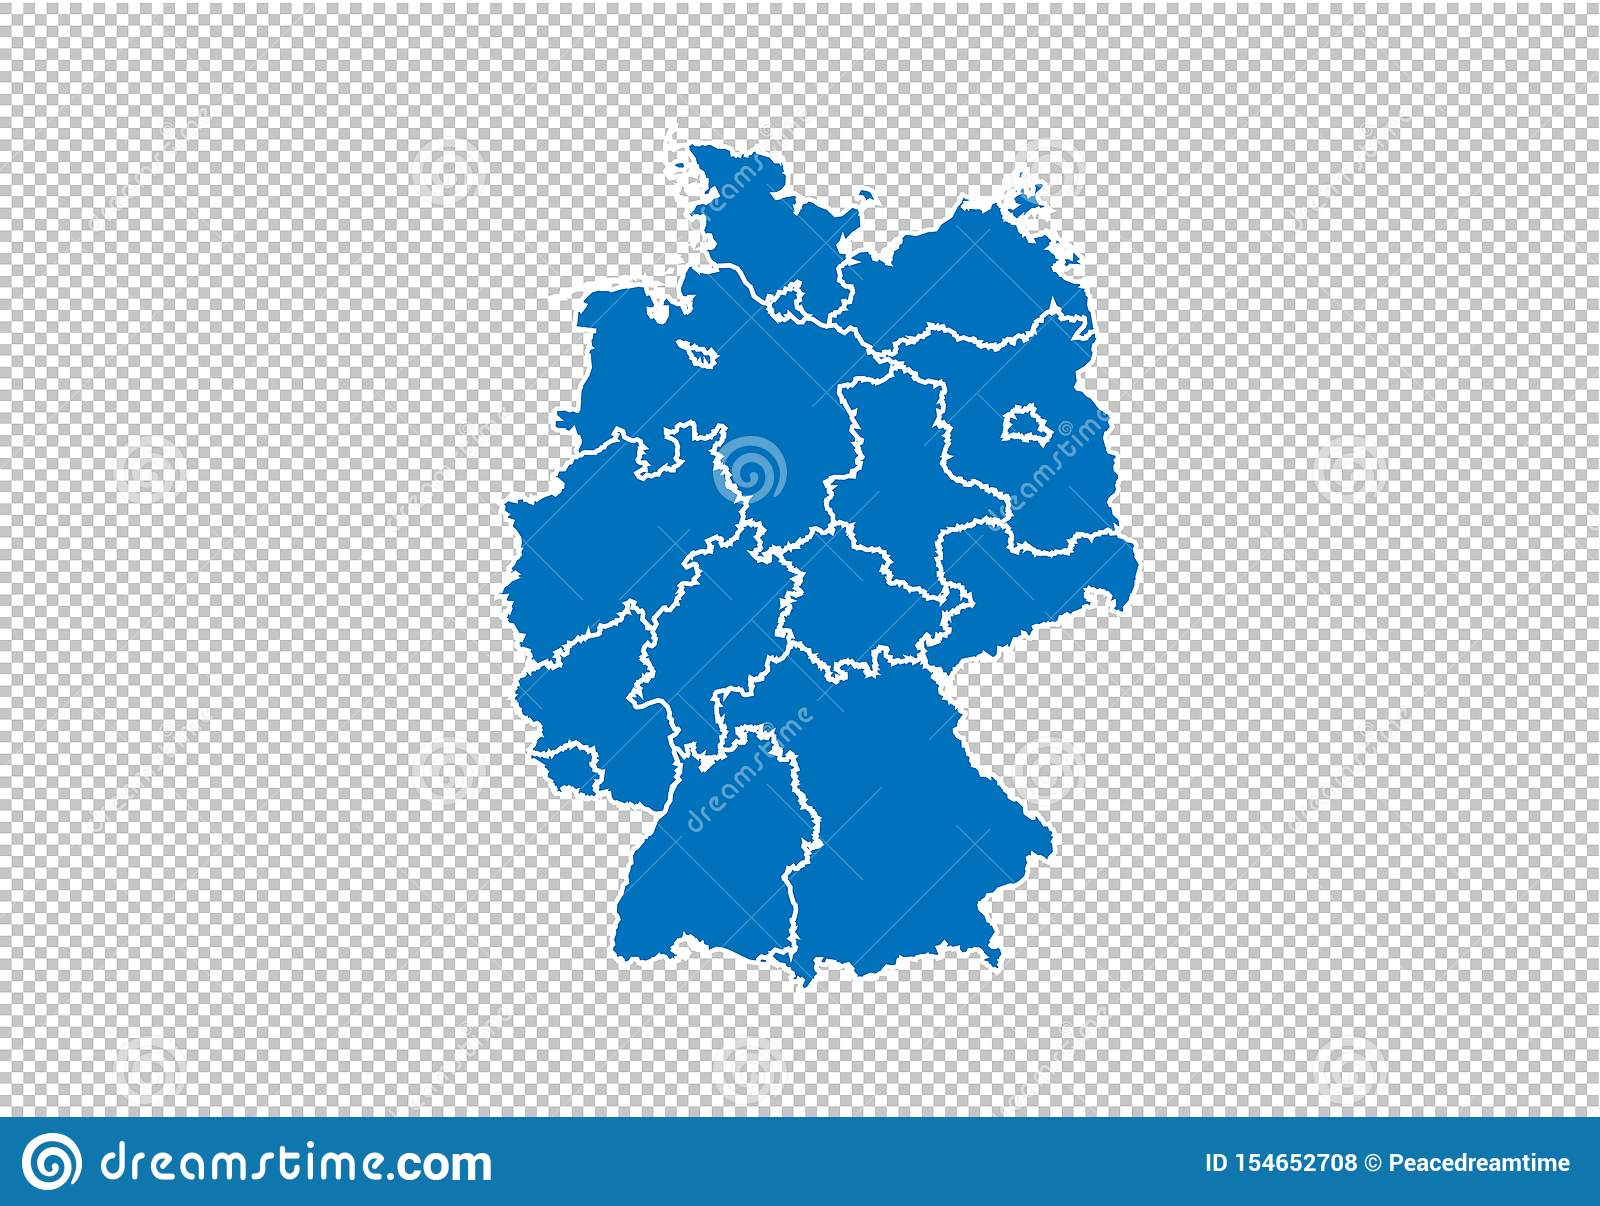 Germany Map High Detailed Blue Map With Counties Regions States Of Germany Nepal Map Isolated On Transparent Background Stock Vector Illustration Of Graphic Contour 154652708